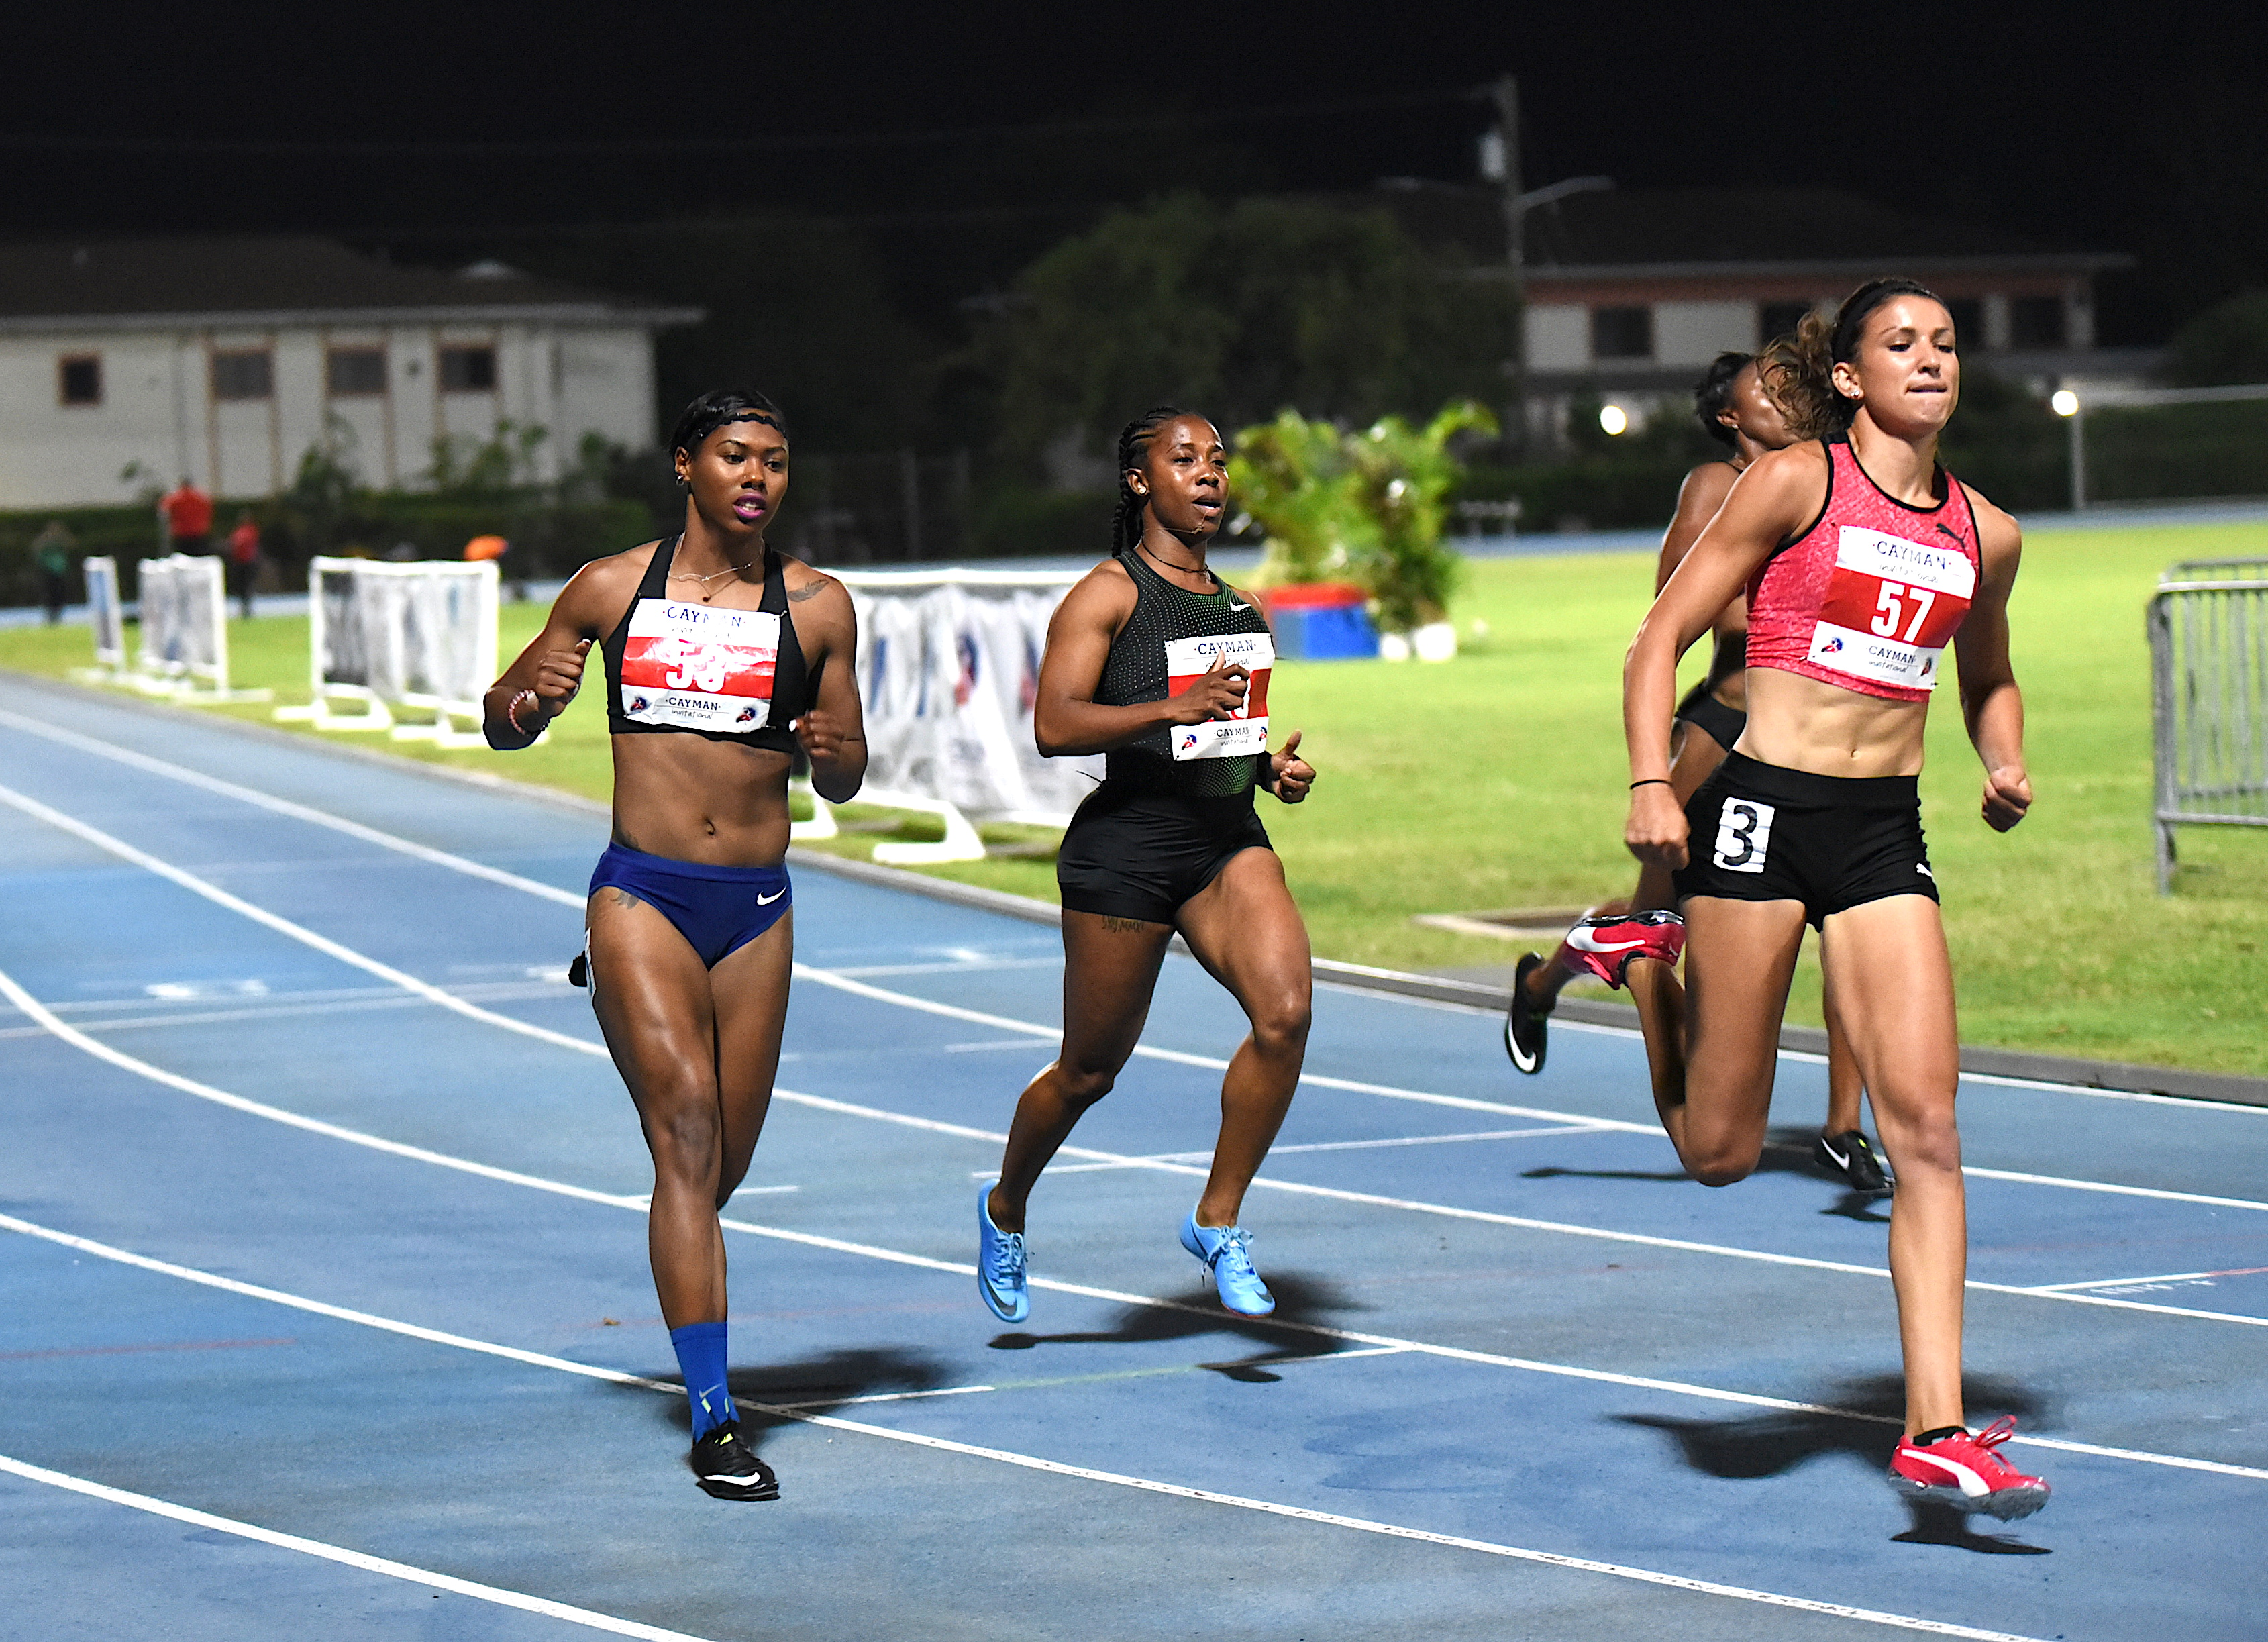 Fraser-Pryce returns to Int'l competition with 11.33 at Cayman Invitational